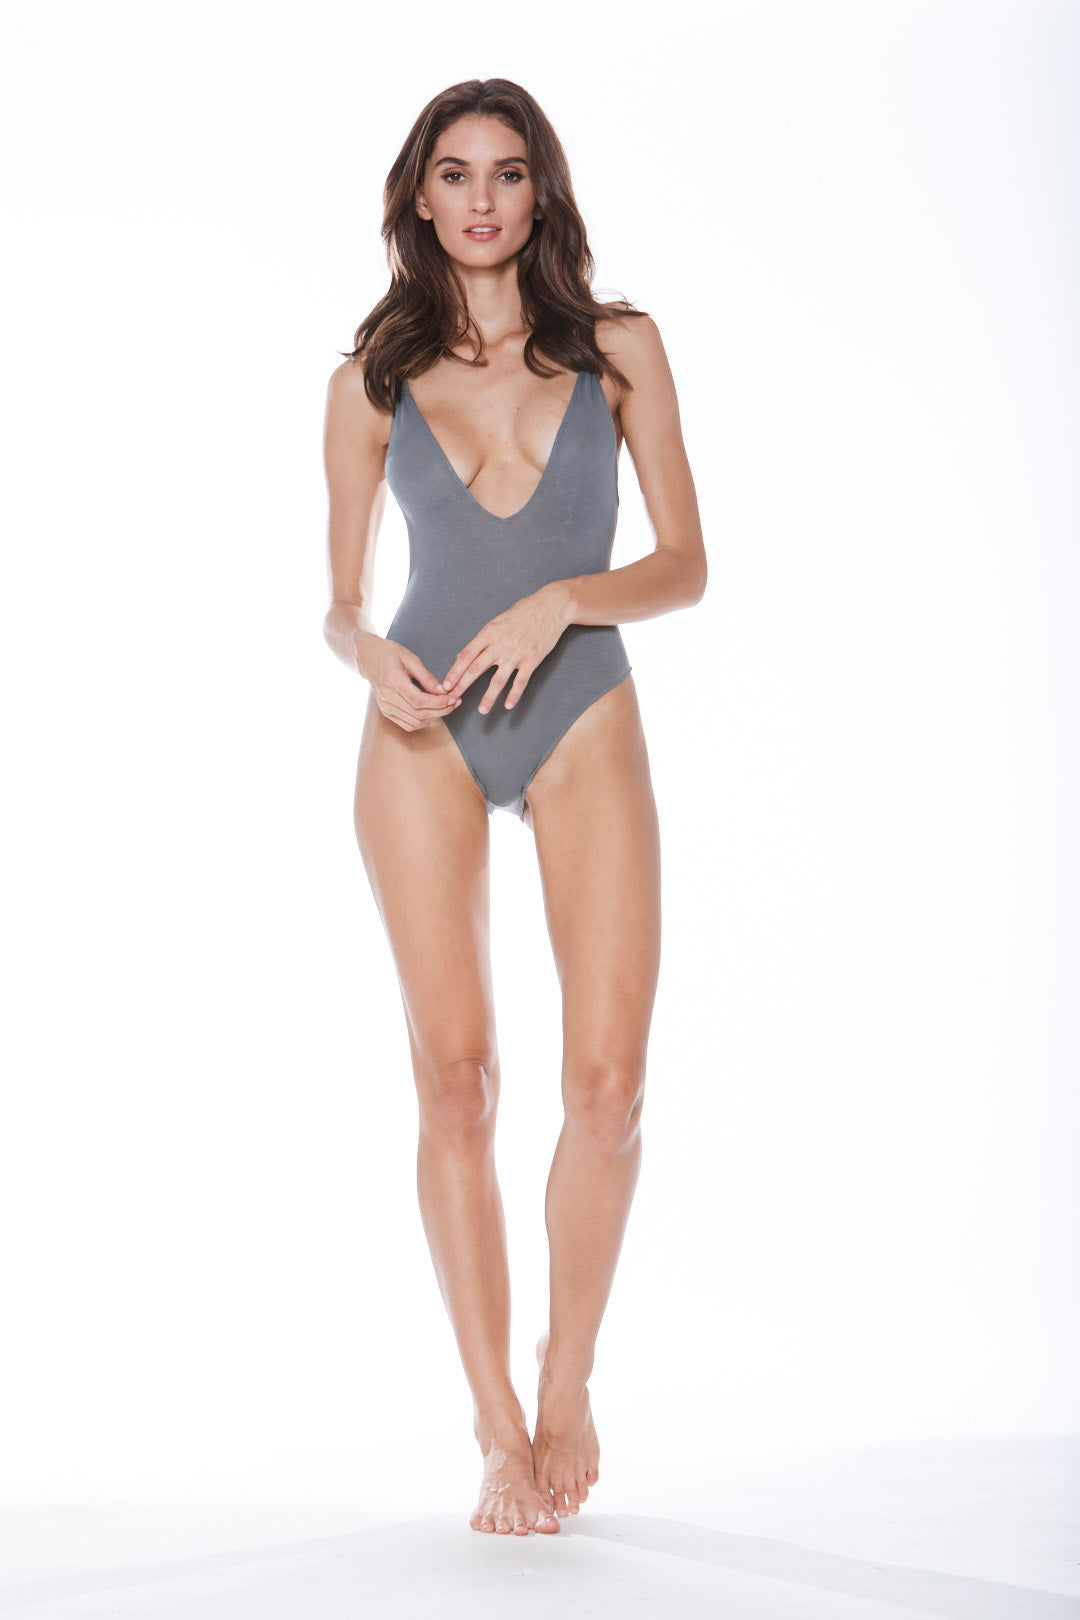 Dave-O Bodysuit - Grey Eastwood